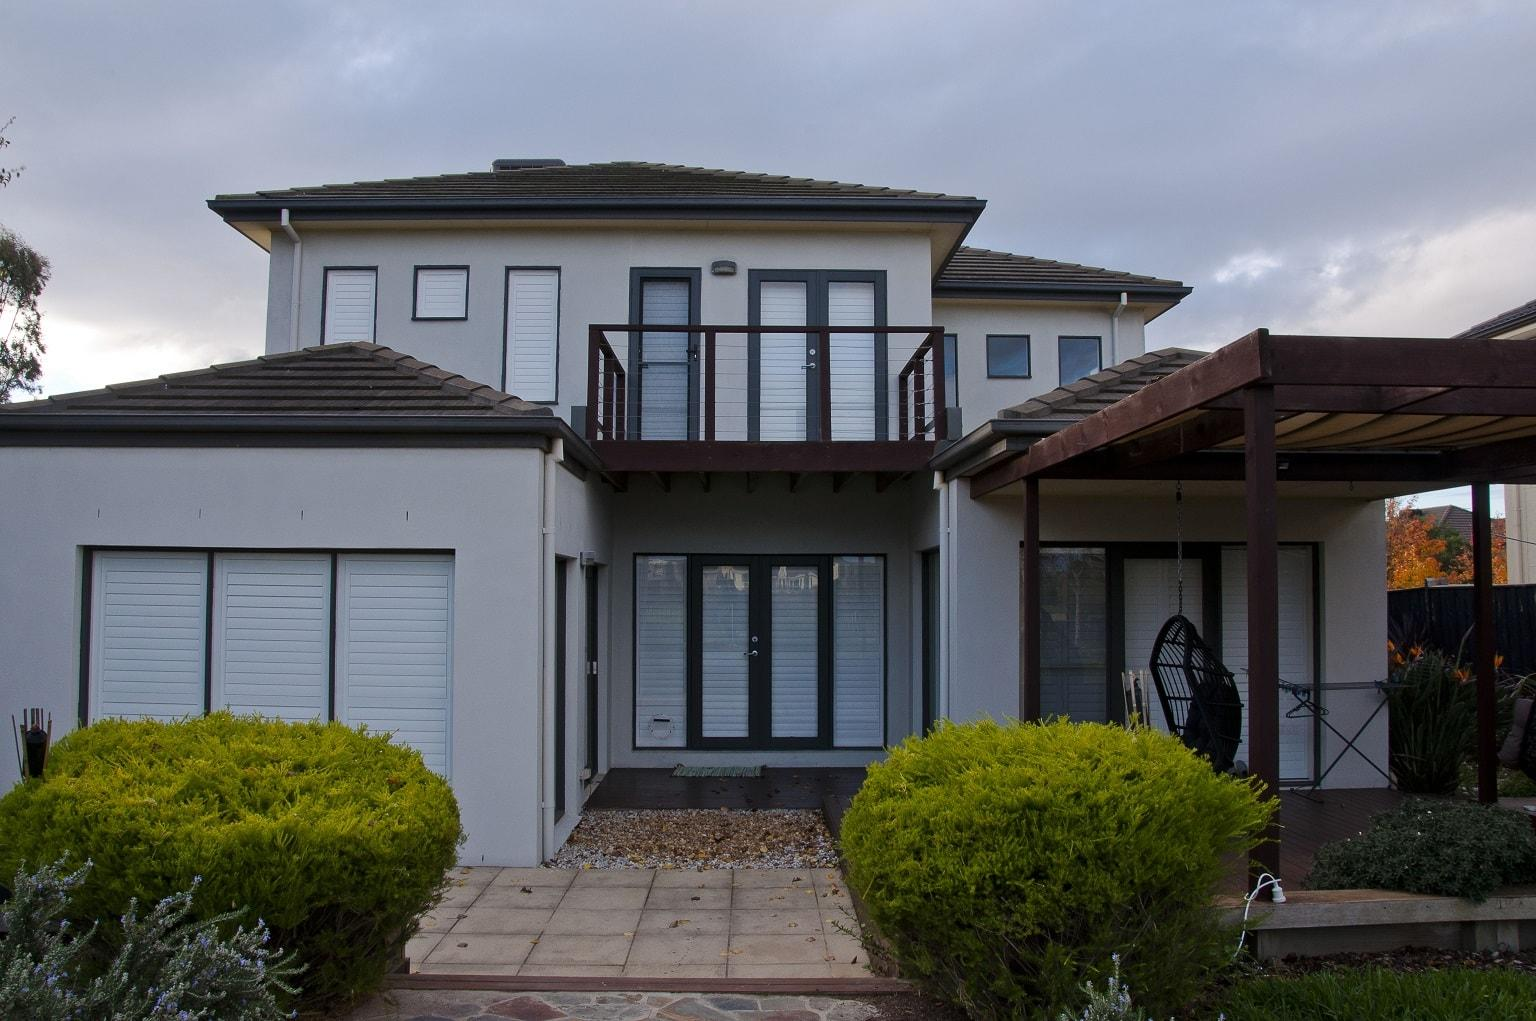 Plantation Shutters Installed into a Two Story House - External View - Window Shutters Closed